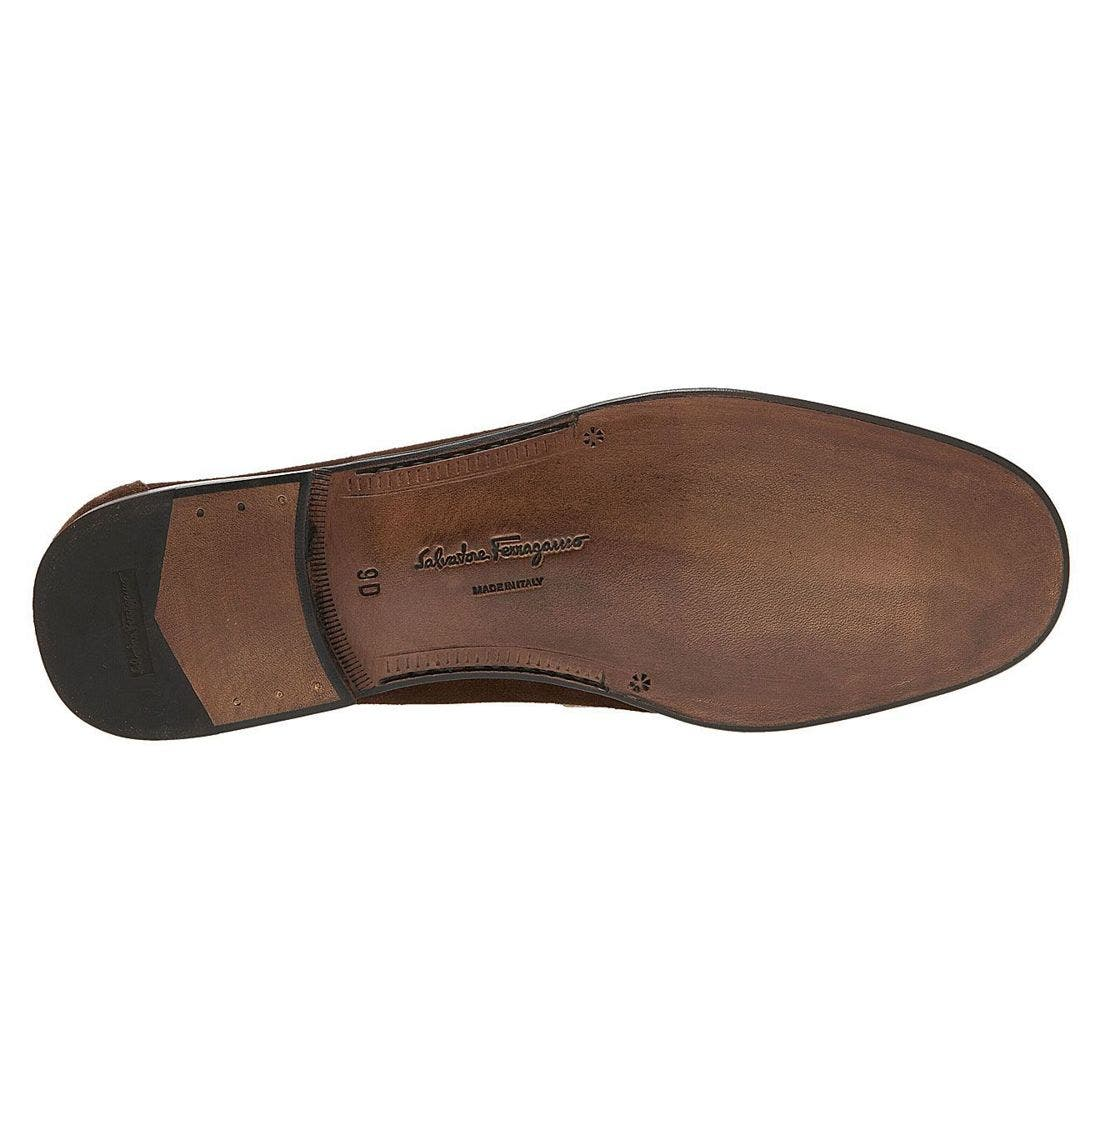 SALVATORE FERRAGAMO,                             'Cancun' Loafer,                             Alternate thumbnail 4, color,                             HKS